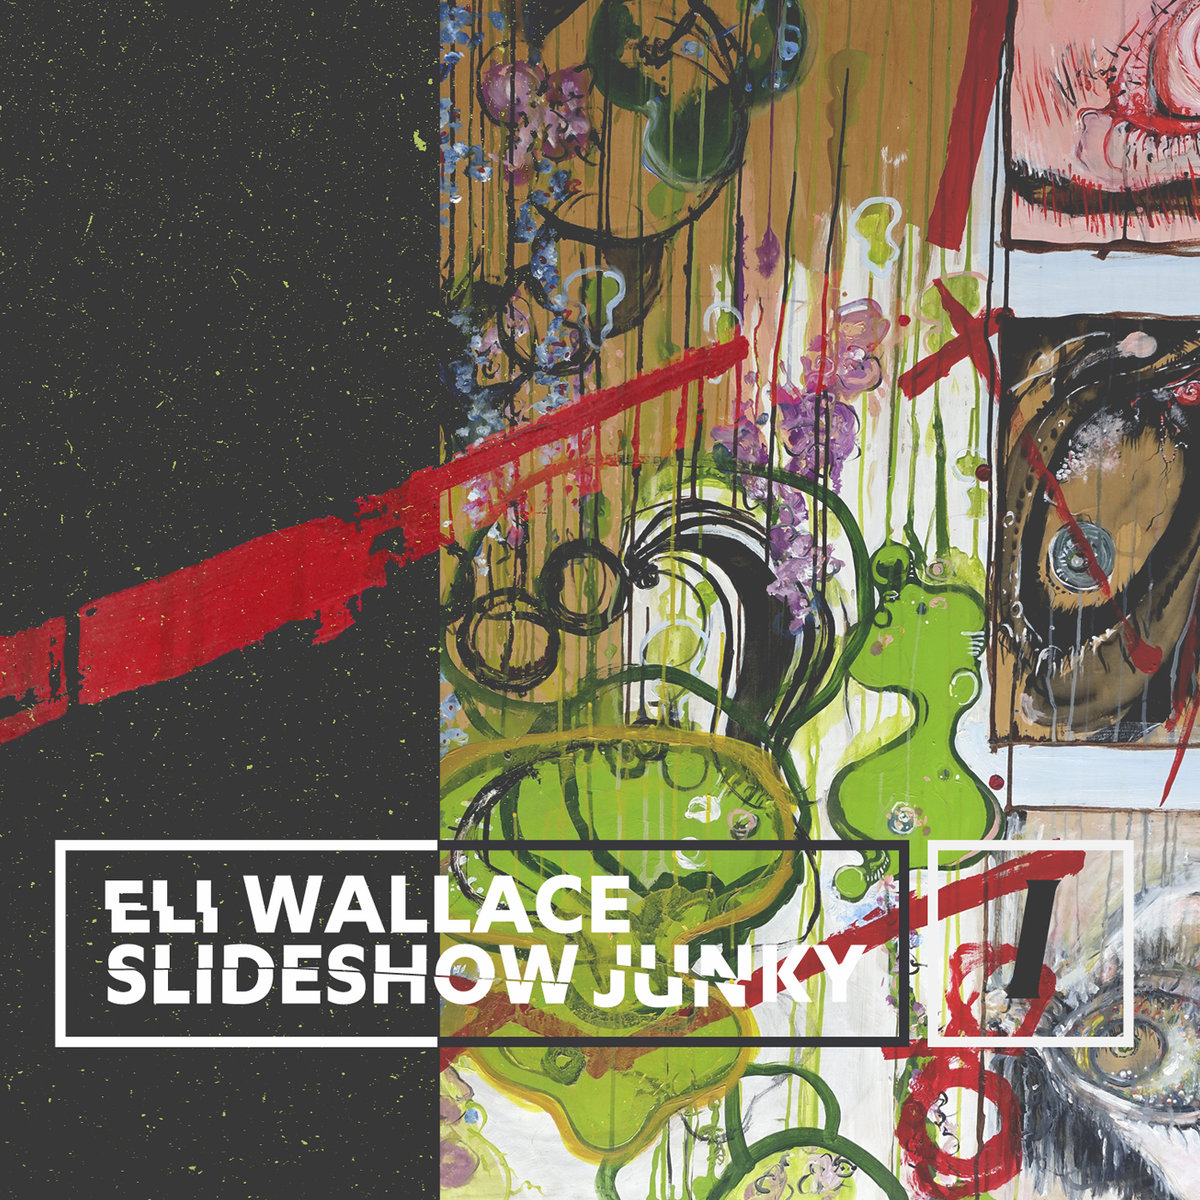 Slideshow Junky I by Eli Wallace